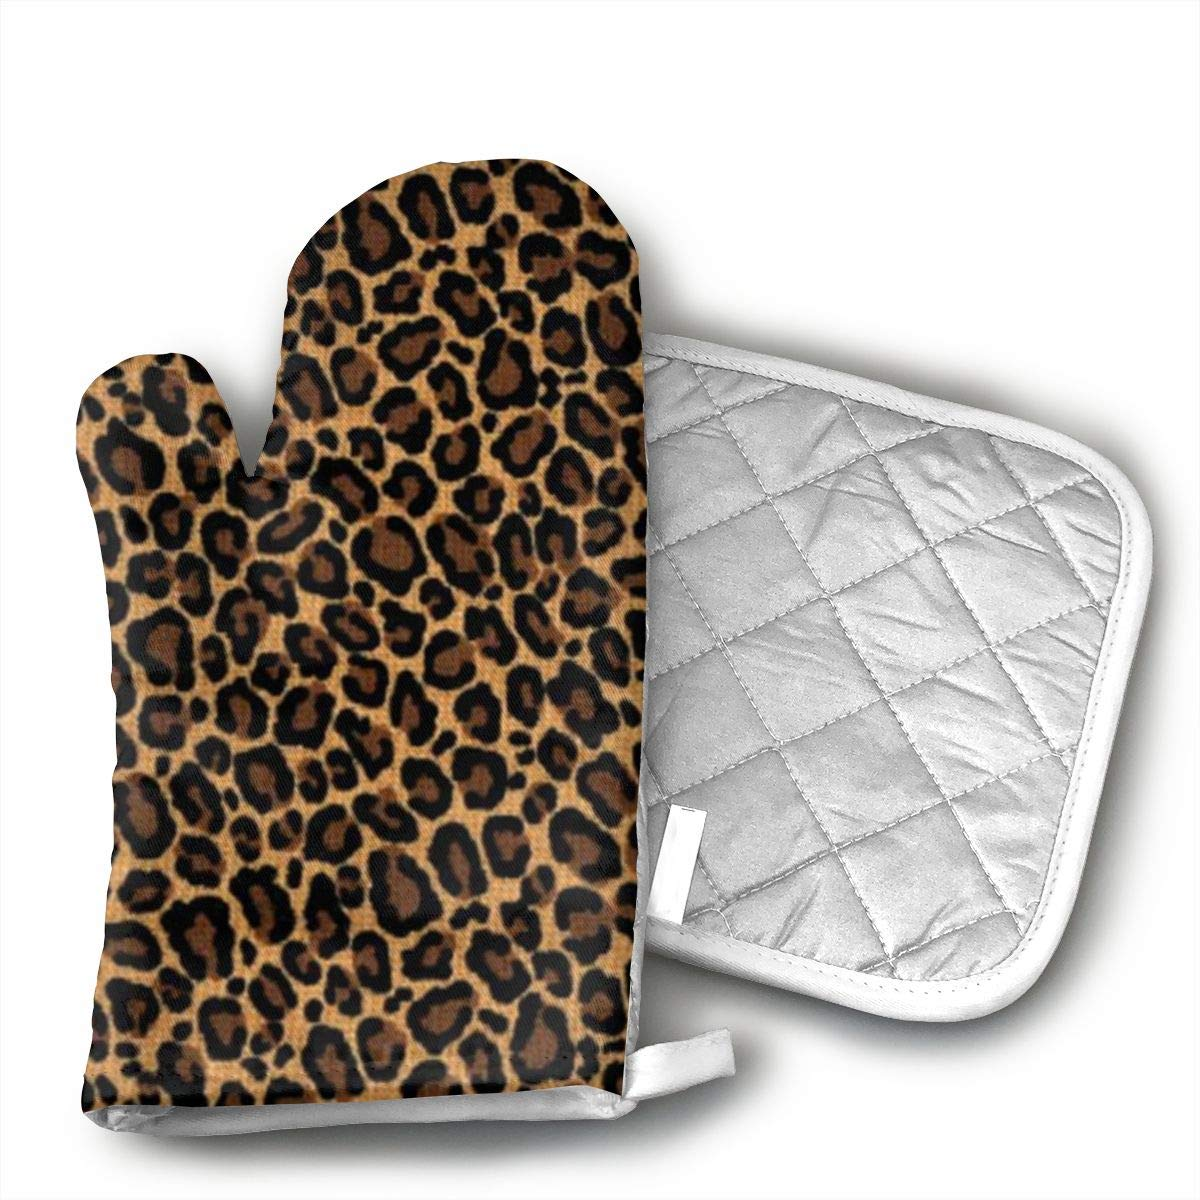 Wiqo9 Leopard Skin Oven Mitts and Pot Holders Kitchen Mitten Cooking Gloves,Cooking, Baking, BBQ.